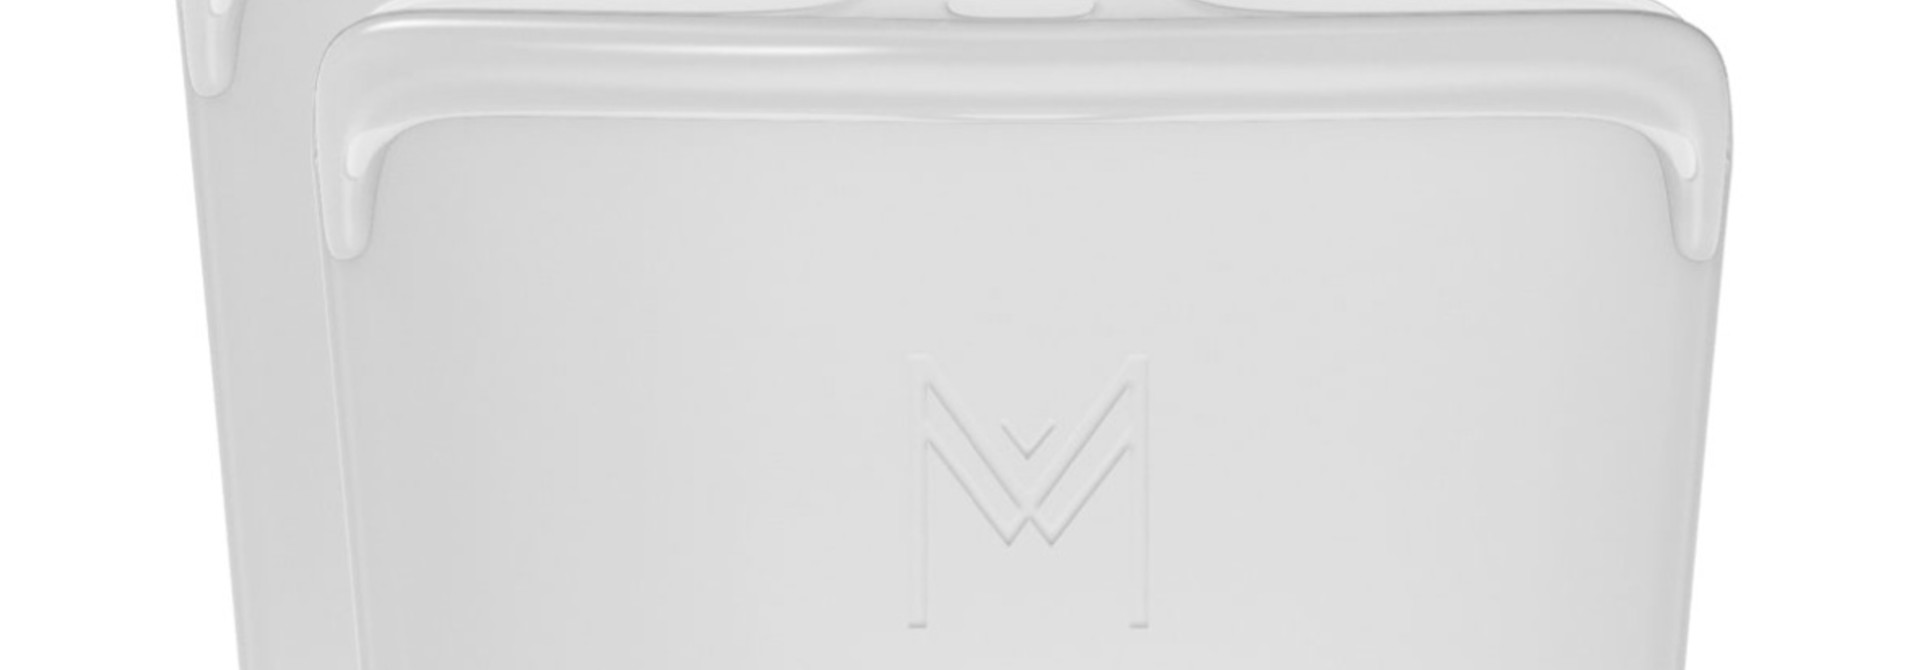 MontiiCo Pack & Snack Bags - Clear